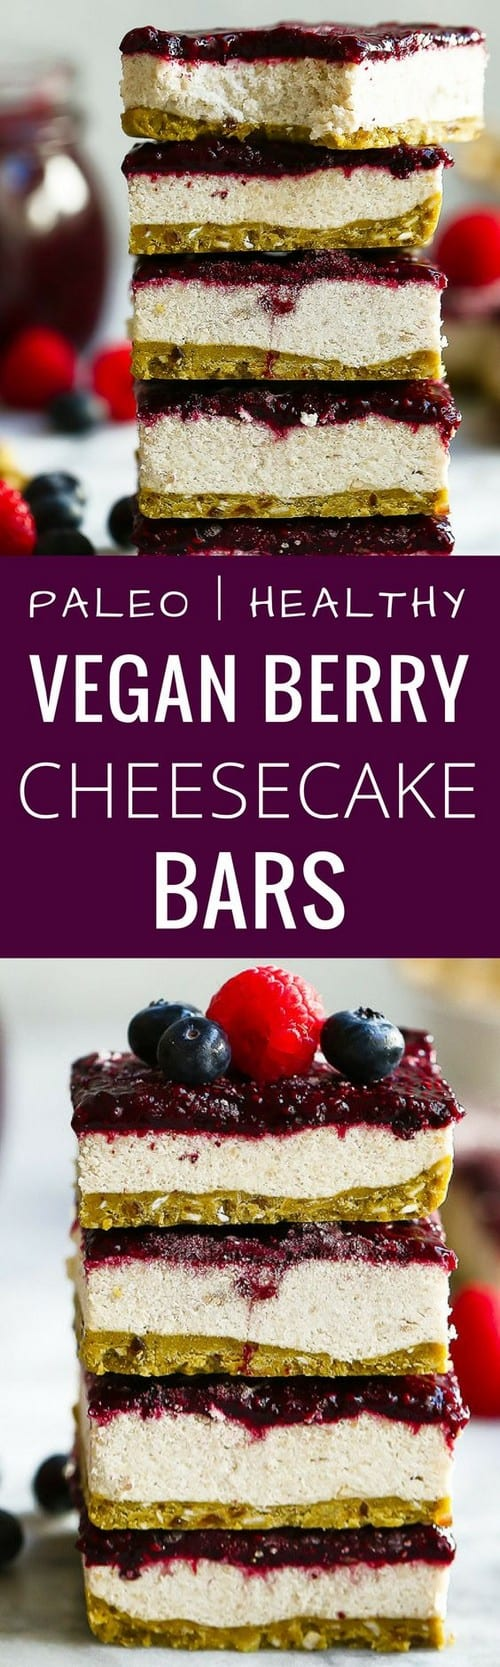 Mediterranean Paleo Vegan Berry Cheesecake Bars